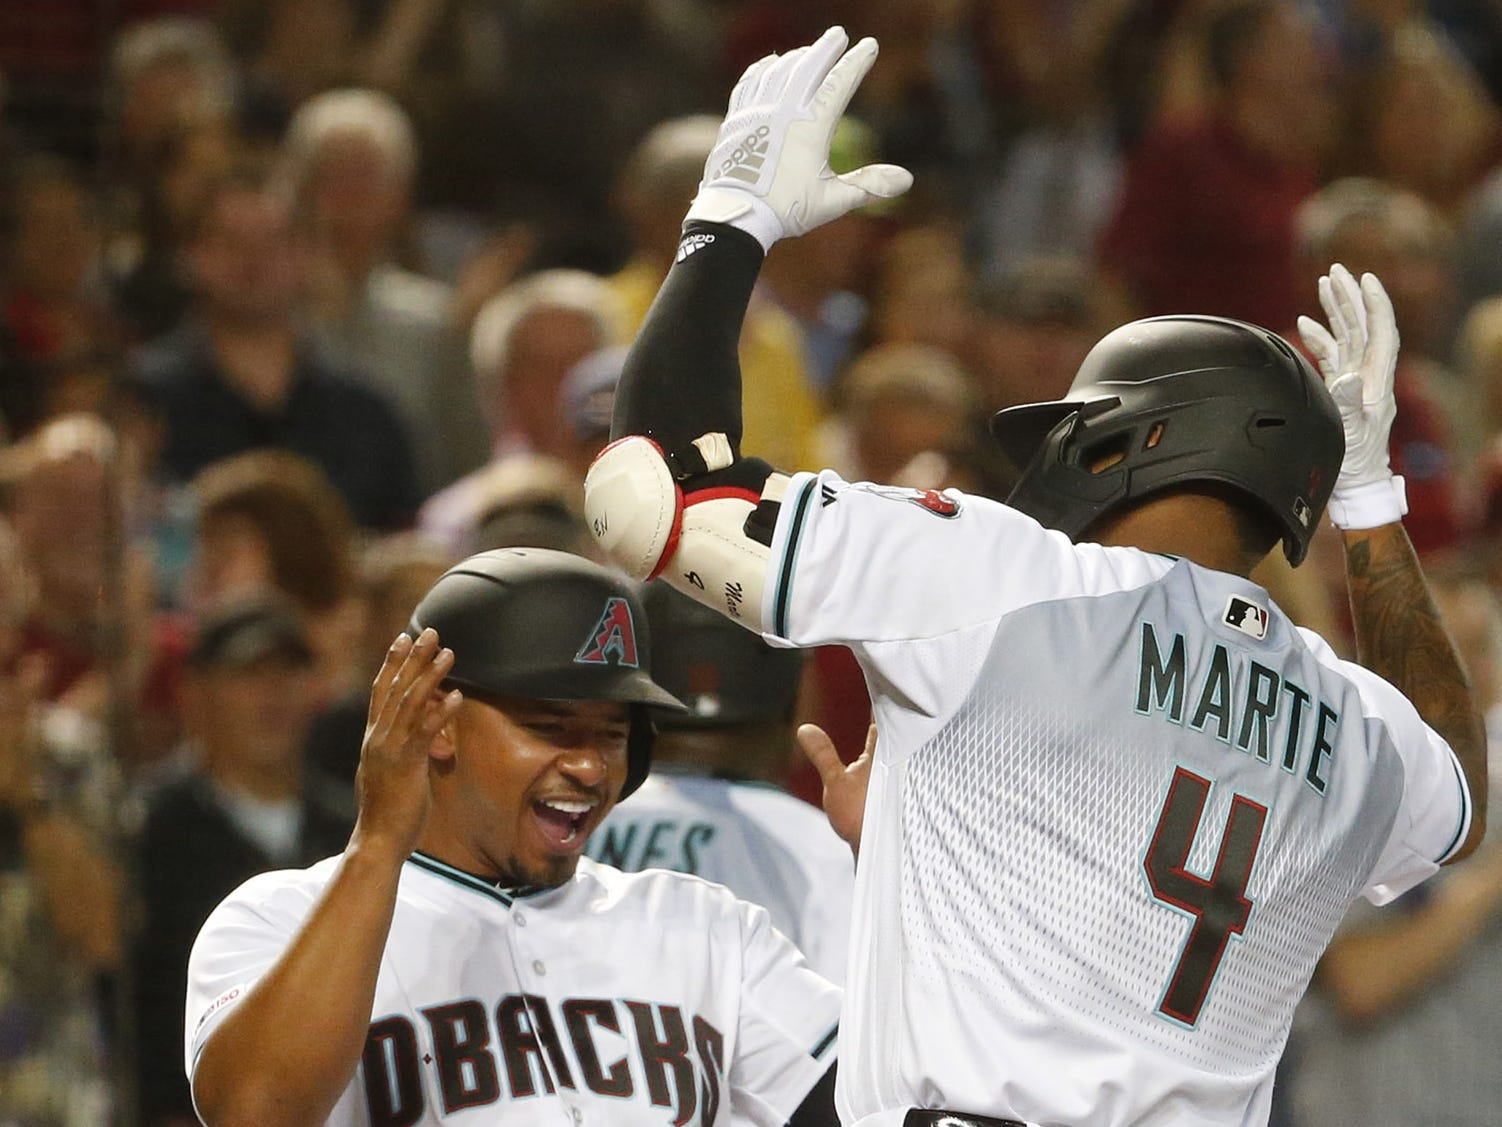 Arizona Diamondbacks third baseman Eduardo Escobar (5) celebrates shortstop Ketel Marte's (4) grand slam in the sixth inning of a Opening Day game at Chase Field in Phoenix on April 5.